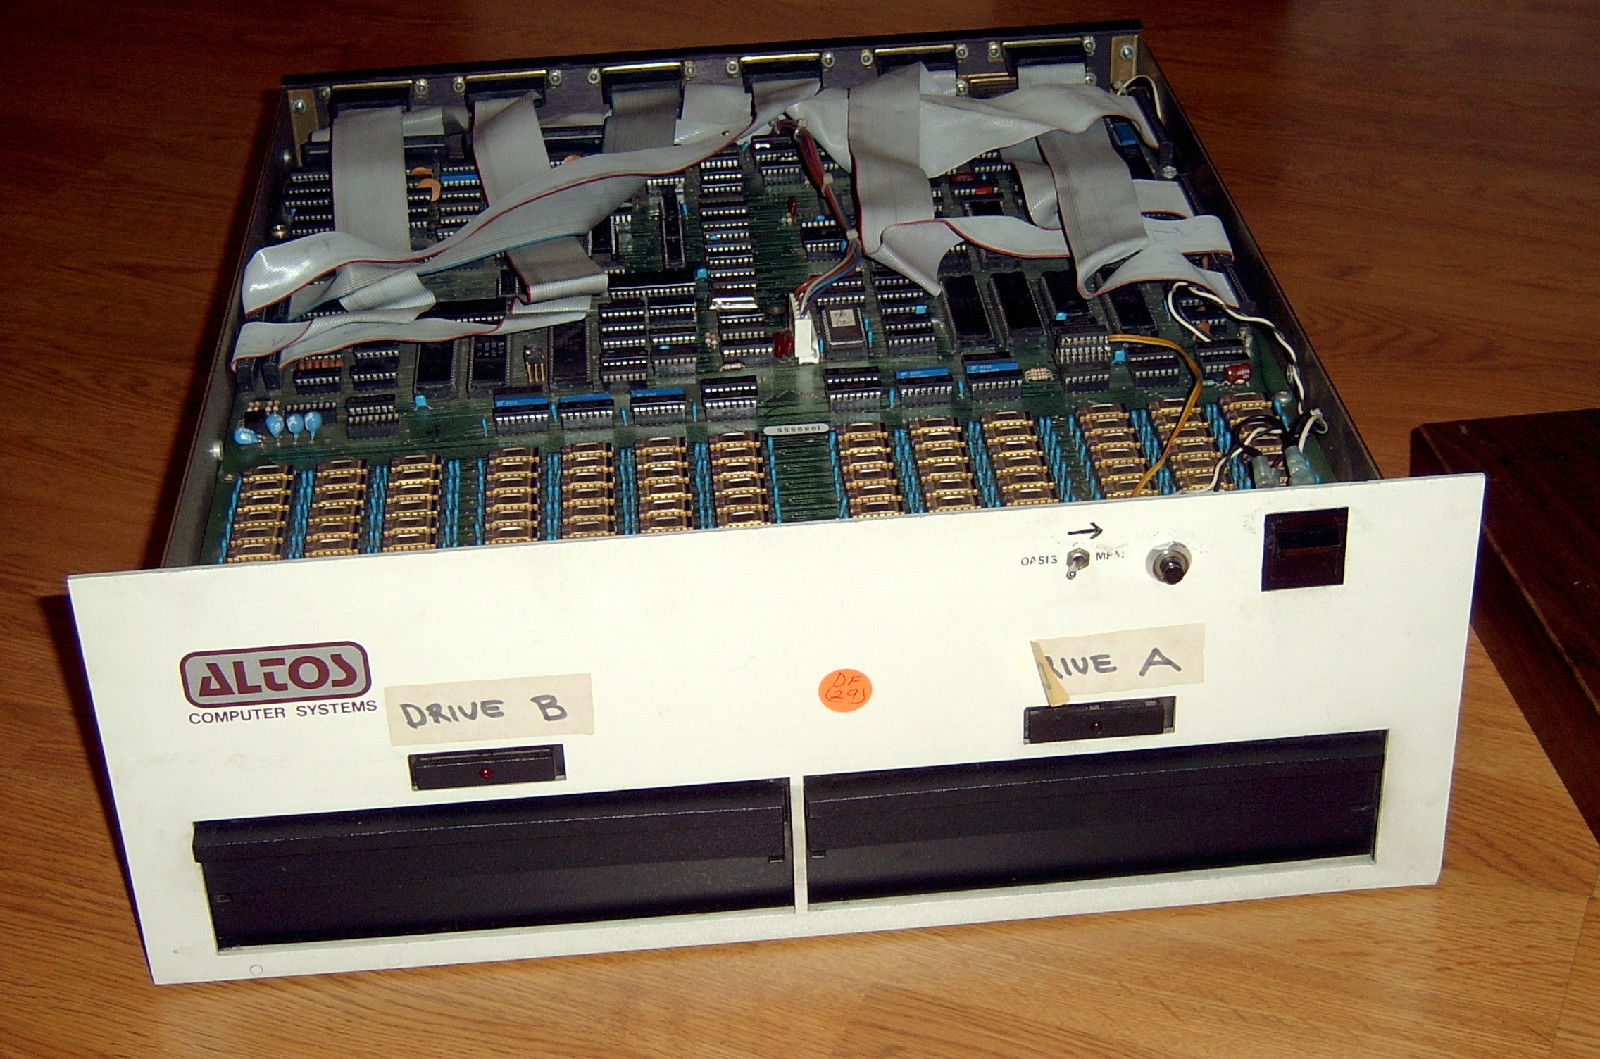 Altos 8000-7 As Shown On eBay